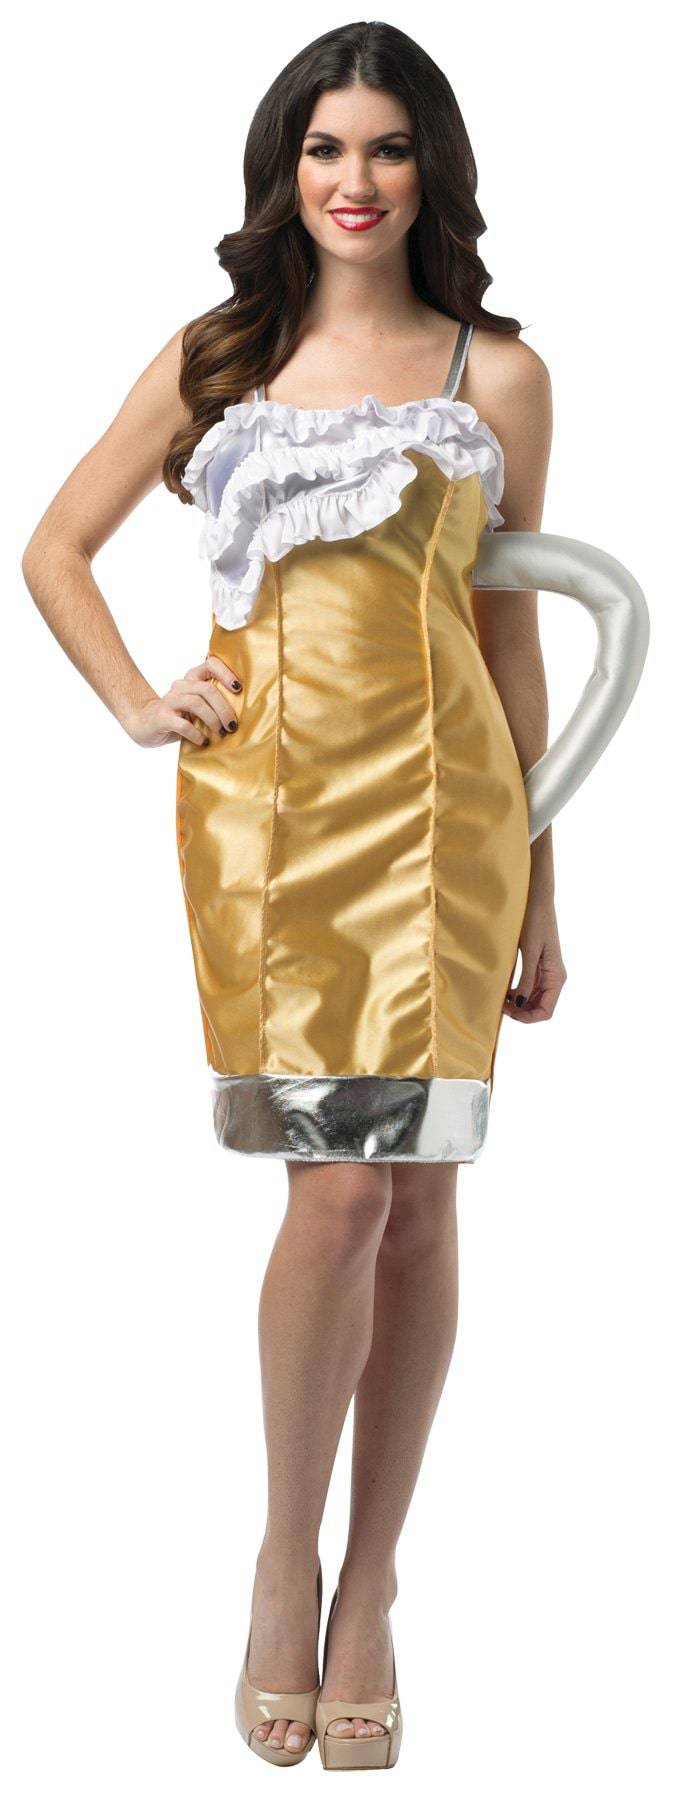 Rasta Imposta Women's Beer Mug Outfit Funny Adult Costume - Costume Arena